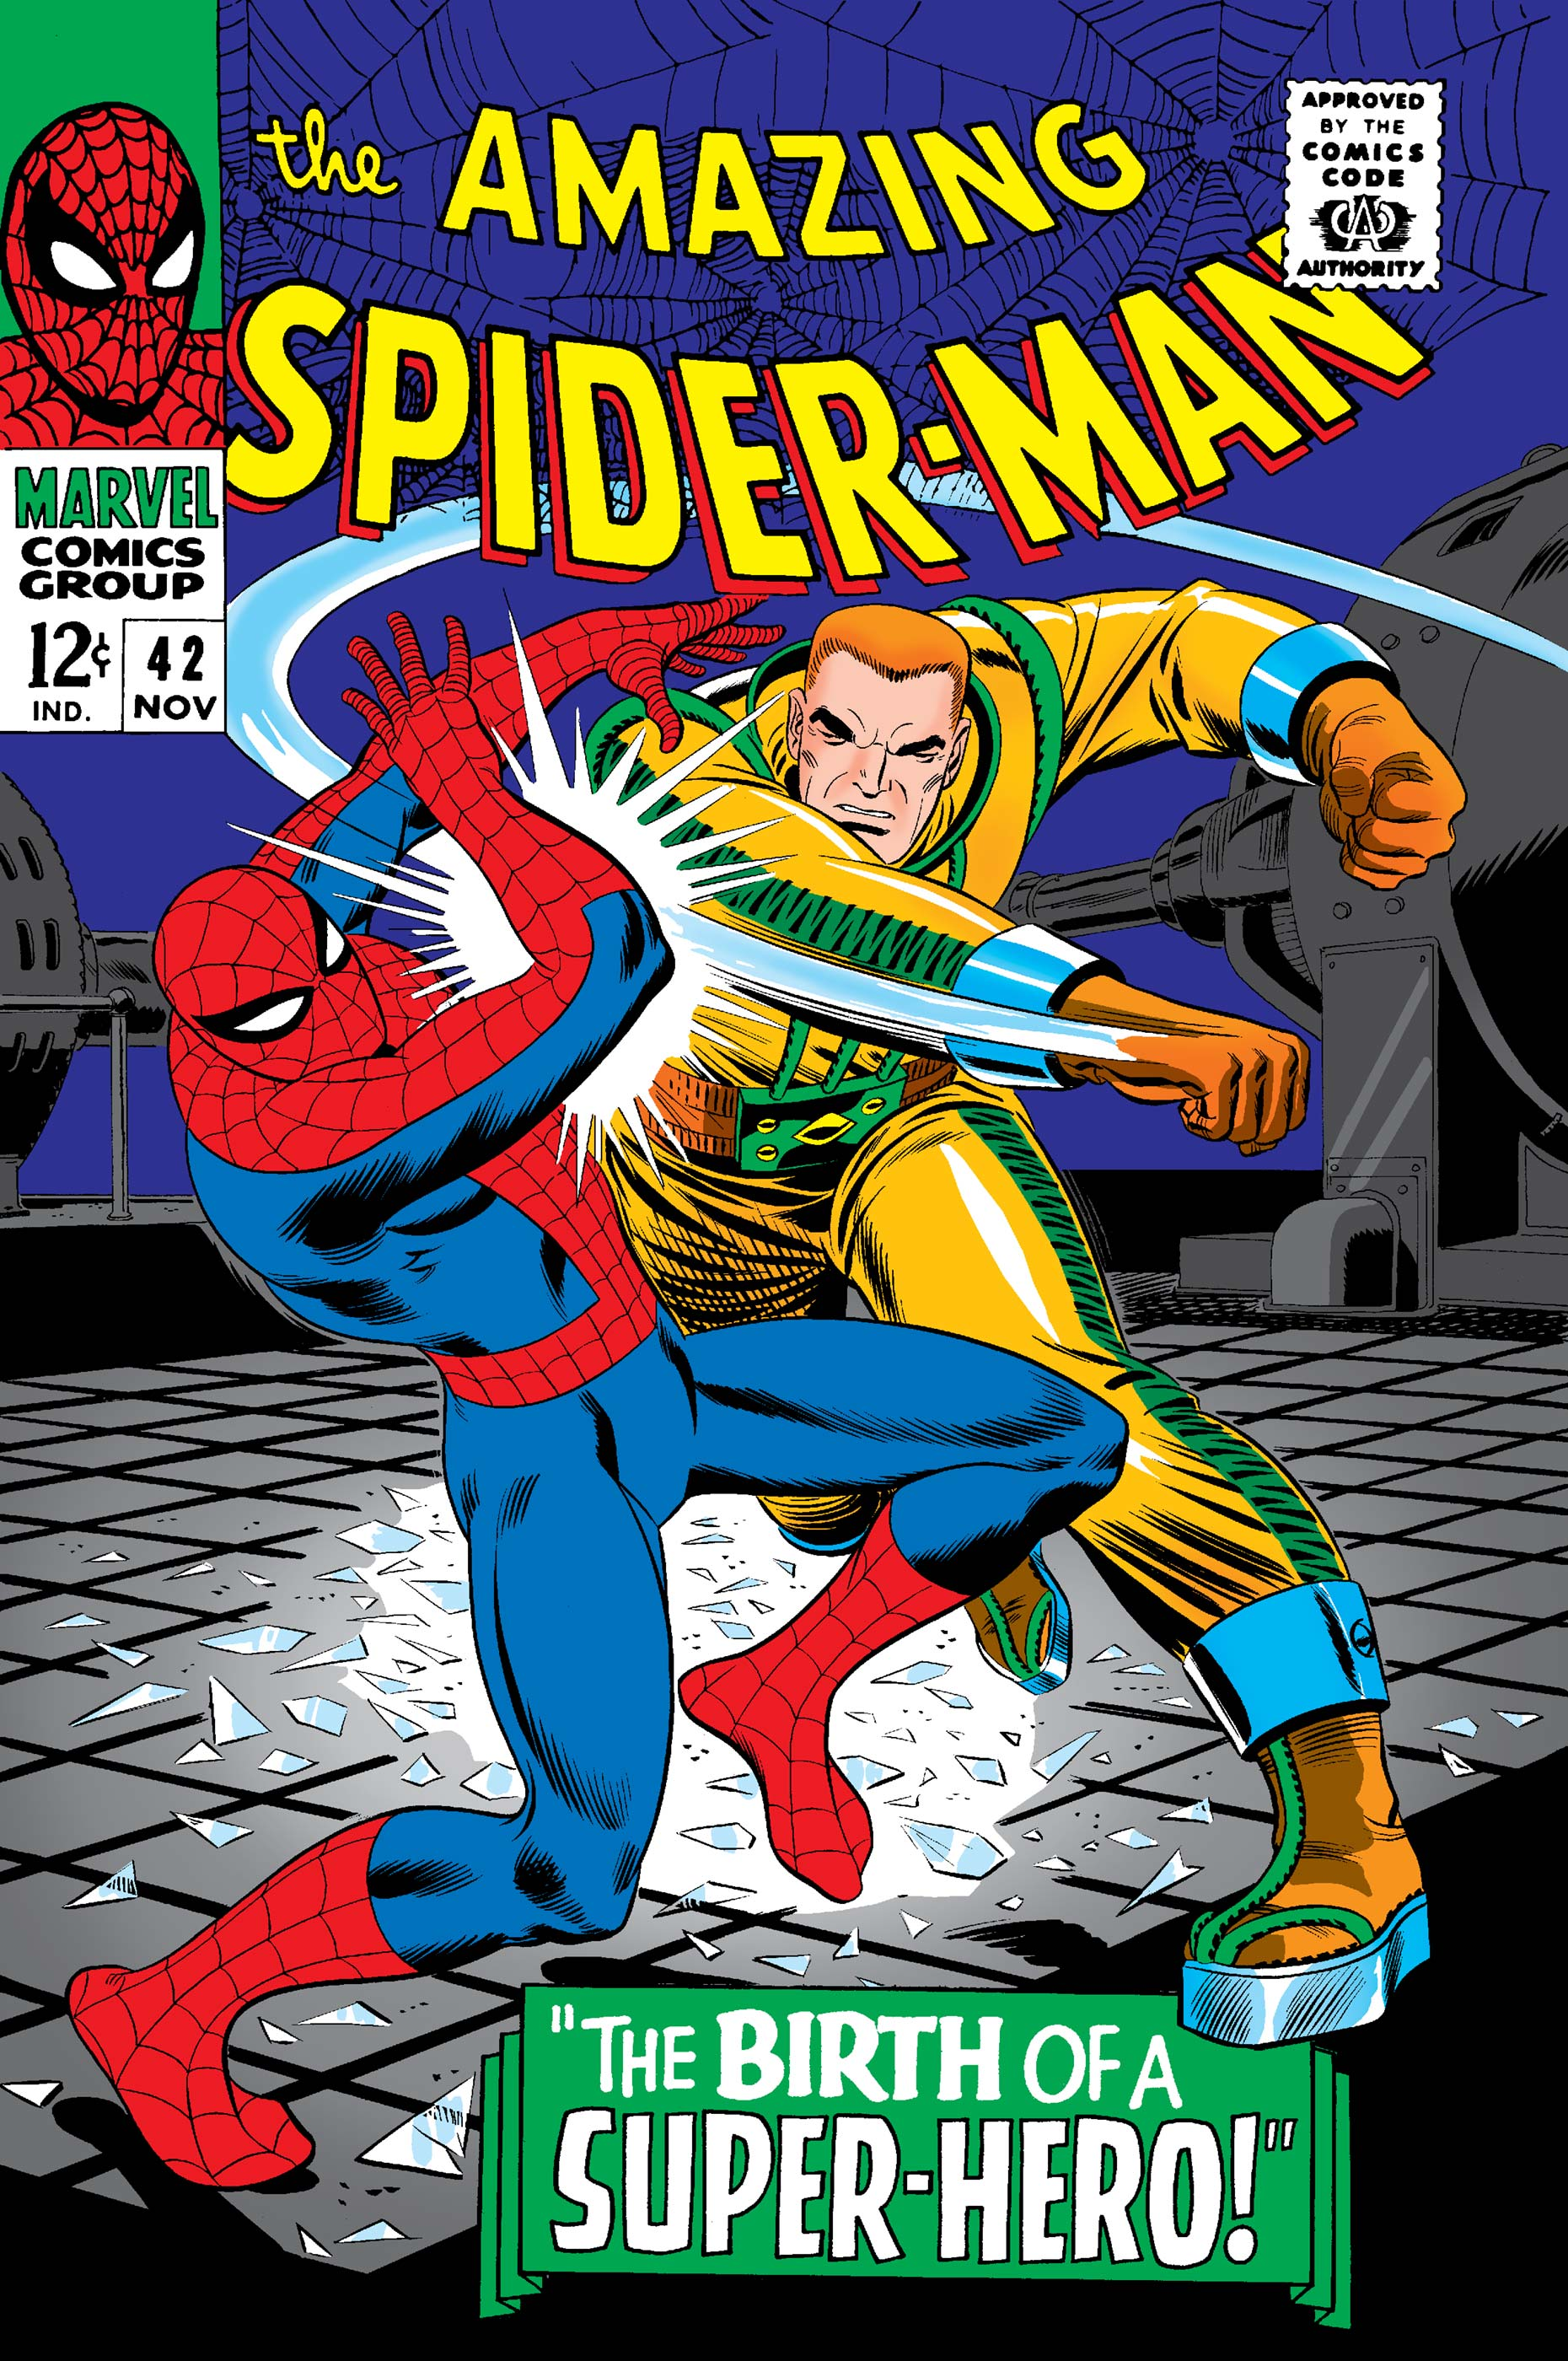 The Amazing Spider-Man (1963) #42